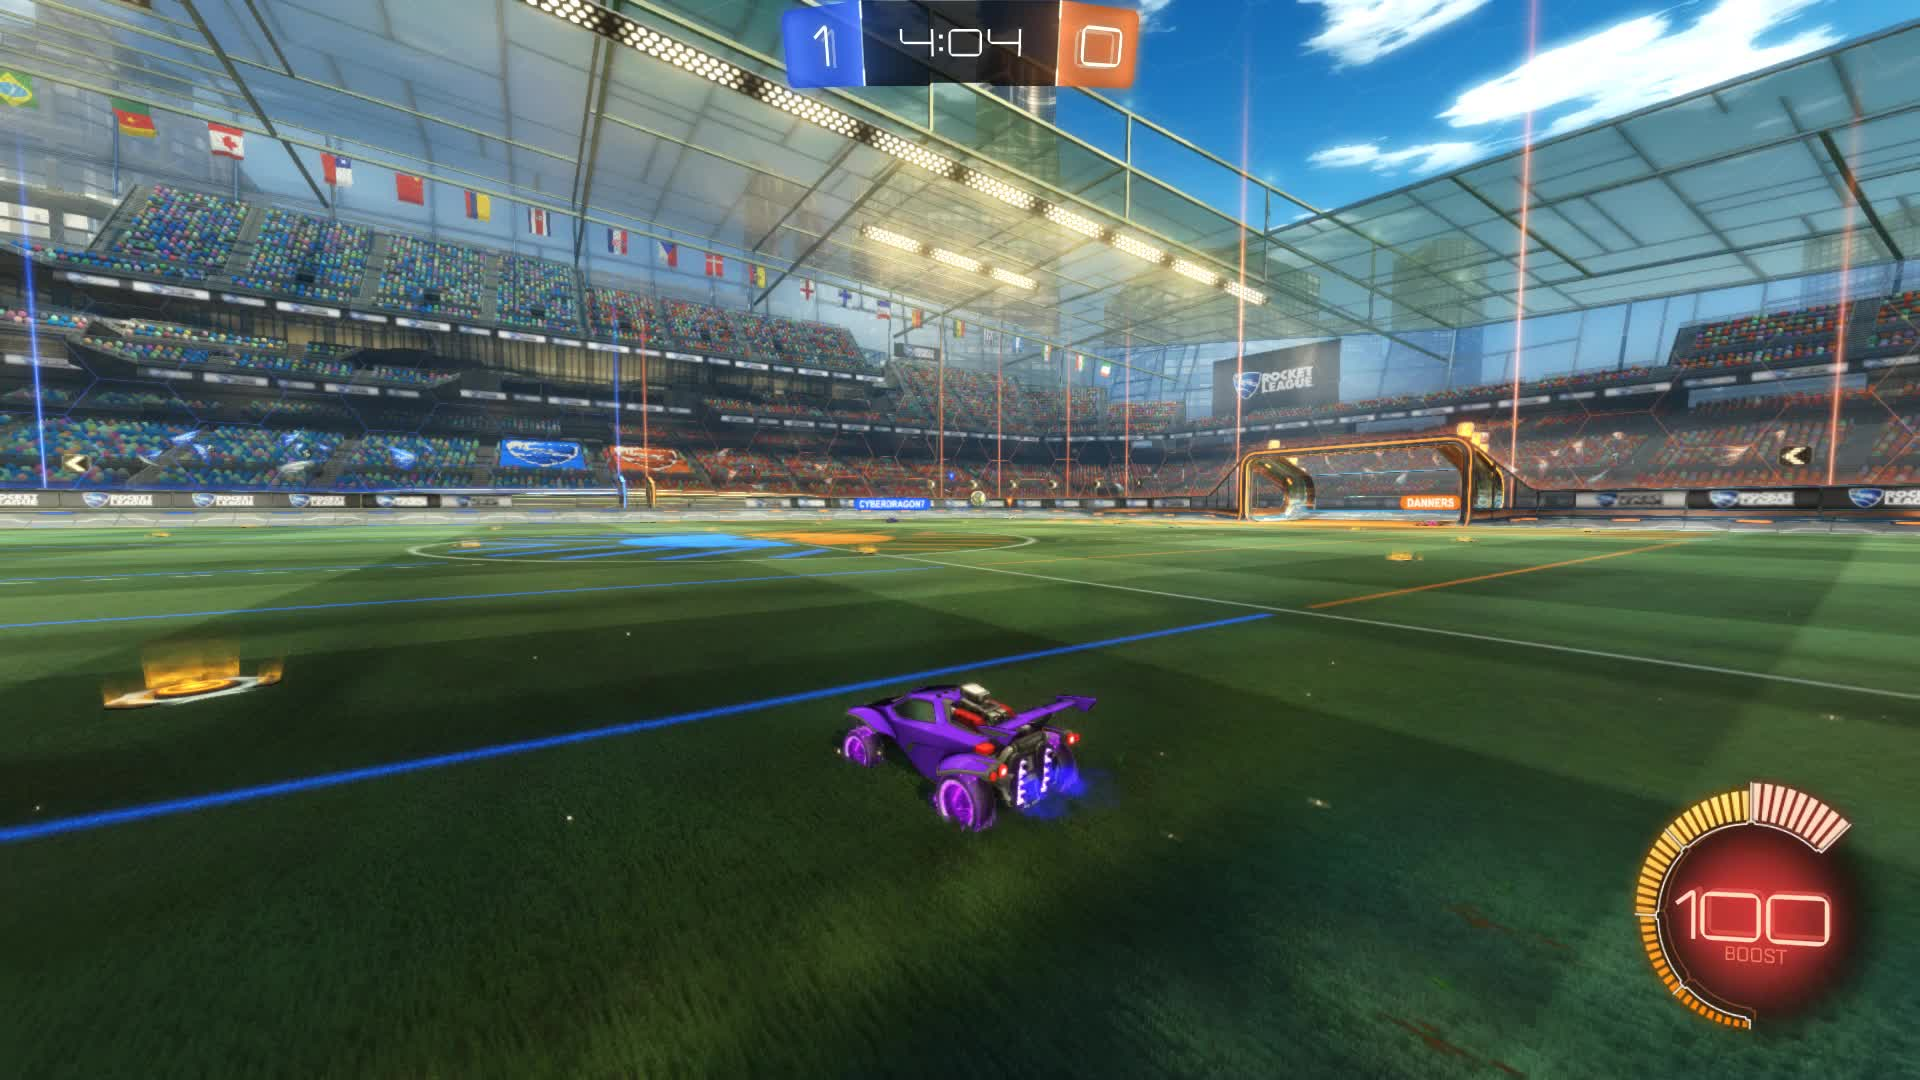 Assist, Gif Your Game, GifYourGame, JAG, Rocket League, RocketLeague, Assist 1: JAG GIFs